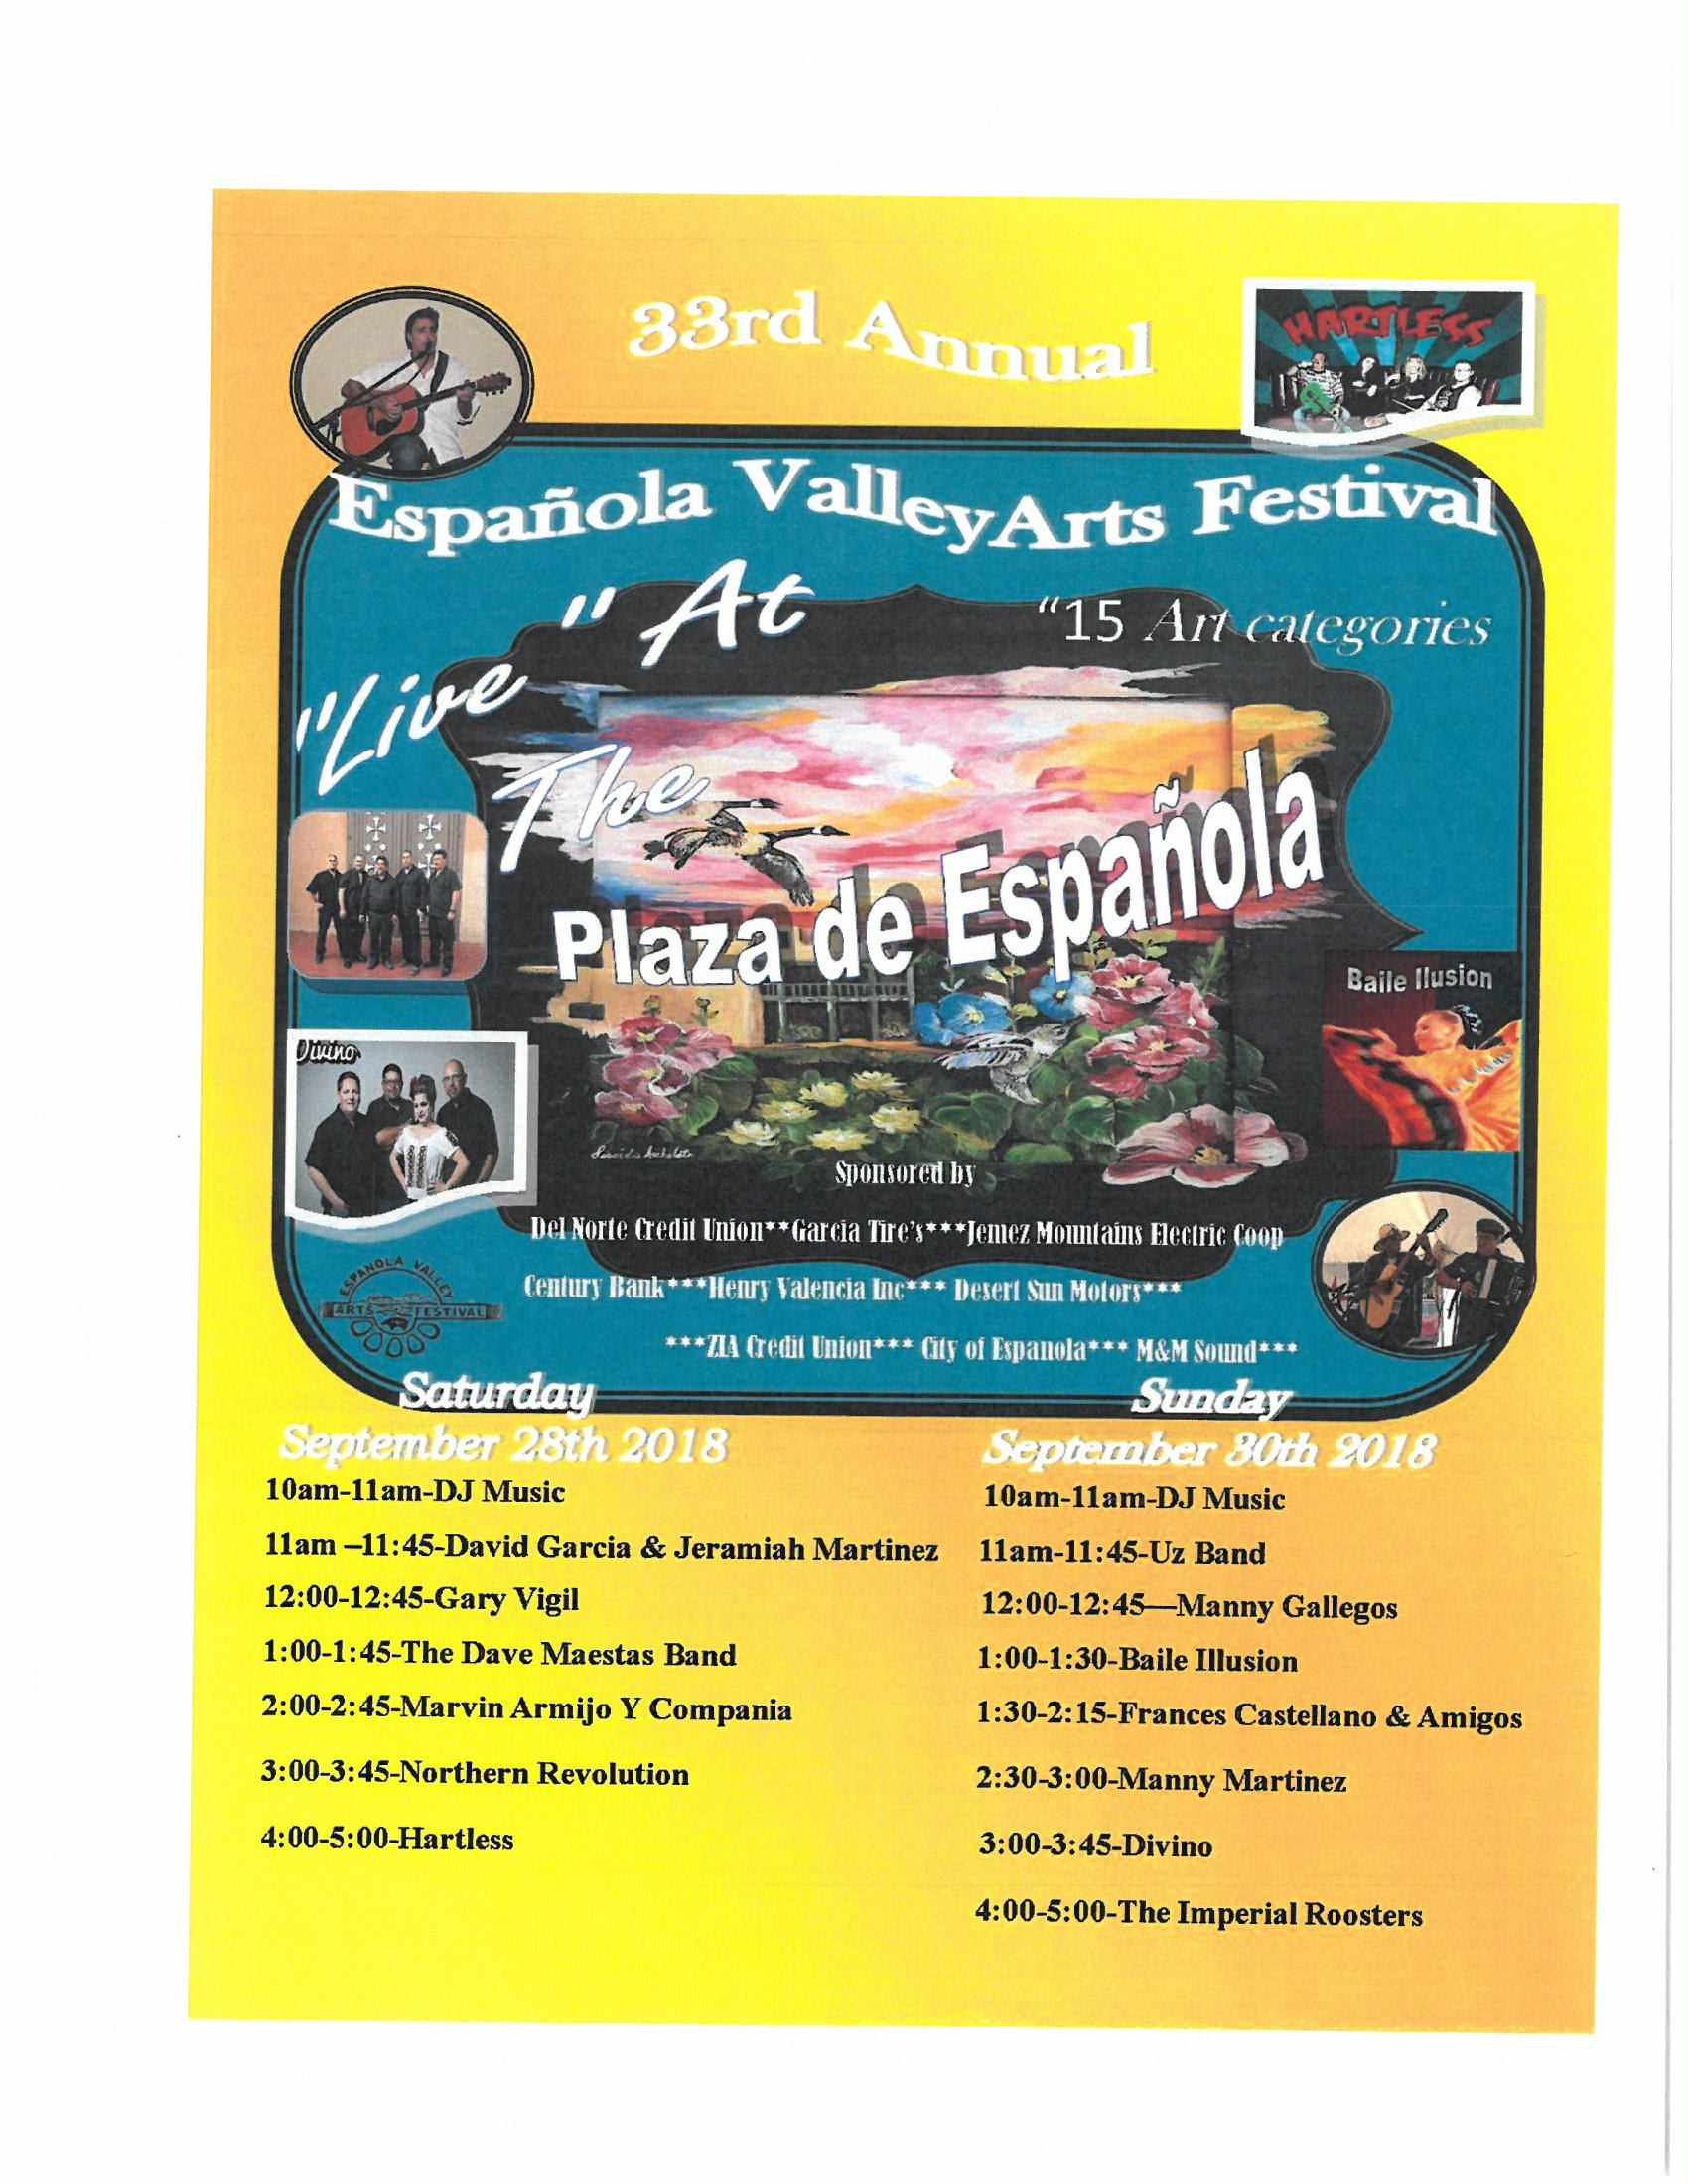 33rd Annual Arts Festival Events